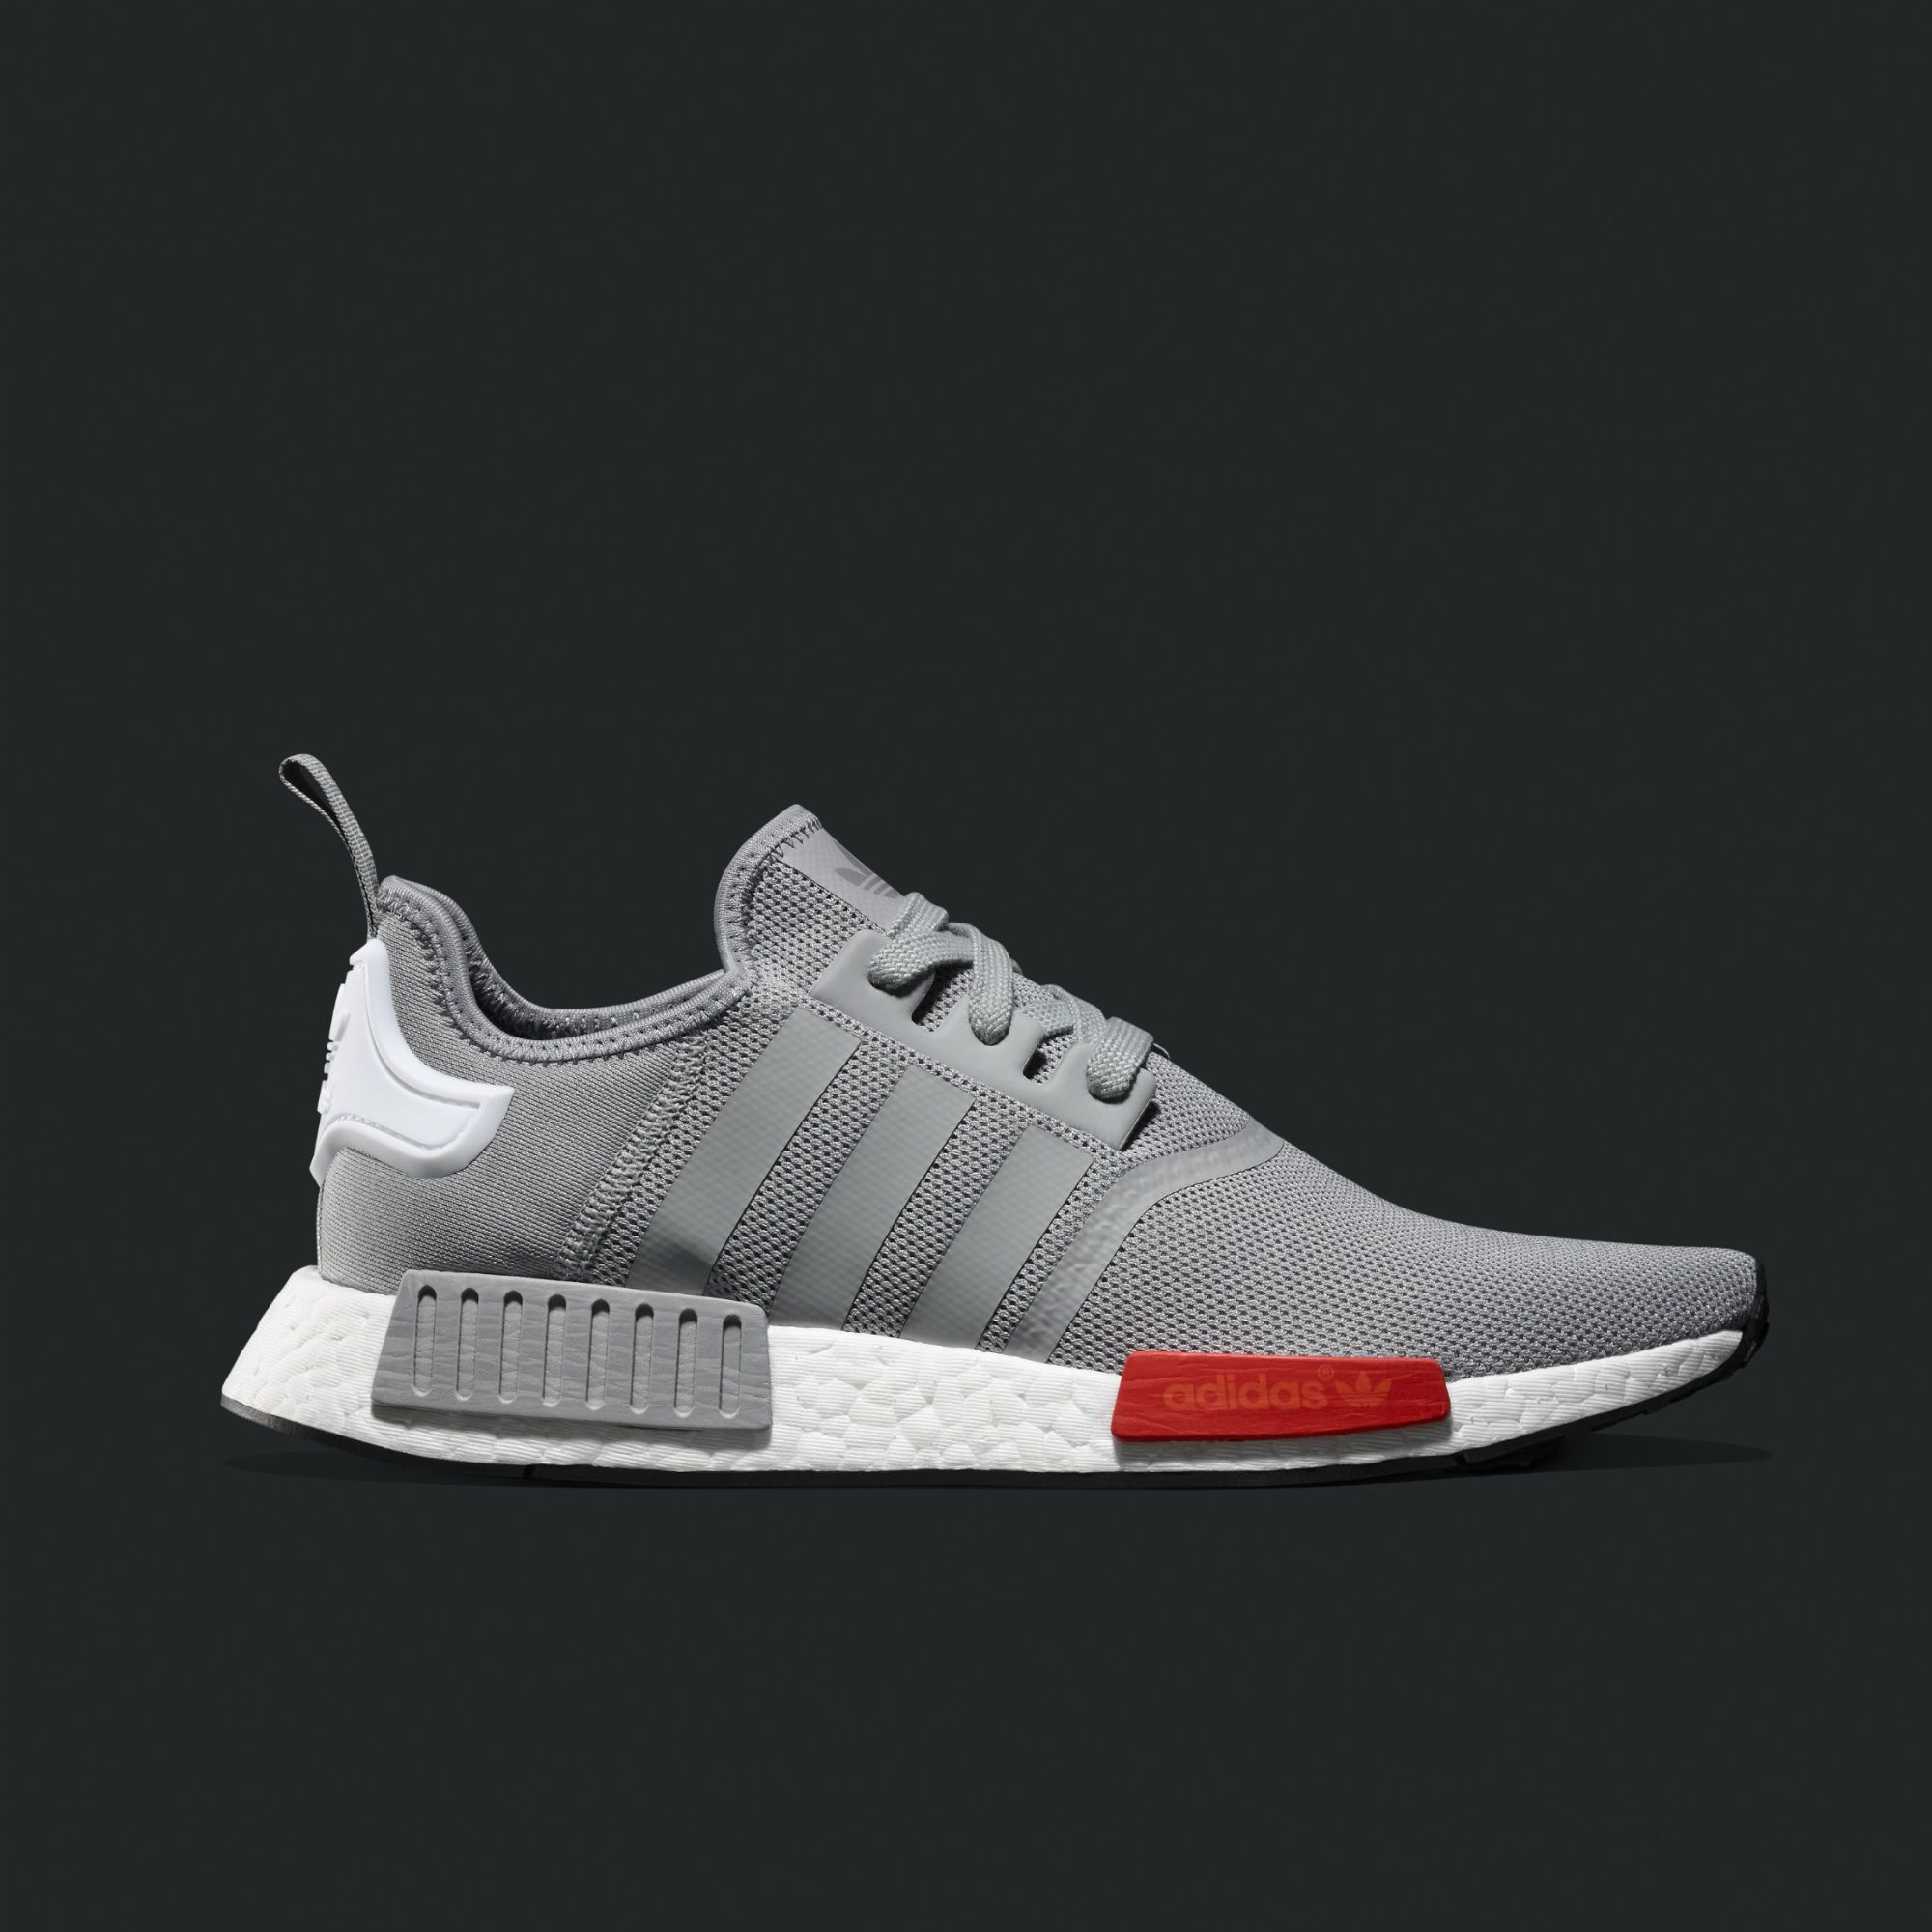 "Comfortable Adidas NMD Last R2 ""Oreo"" Black/White Clearance Running Shoes"